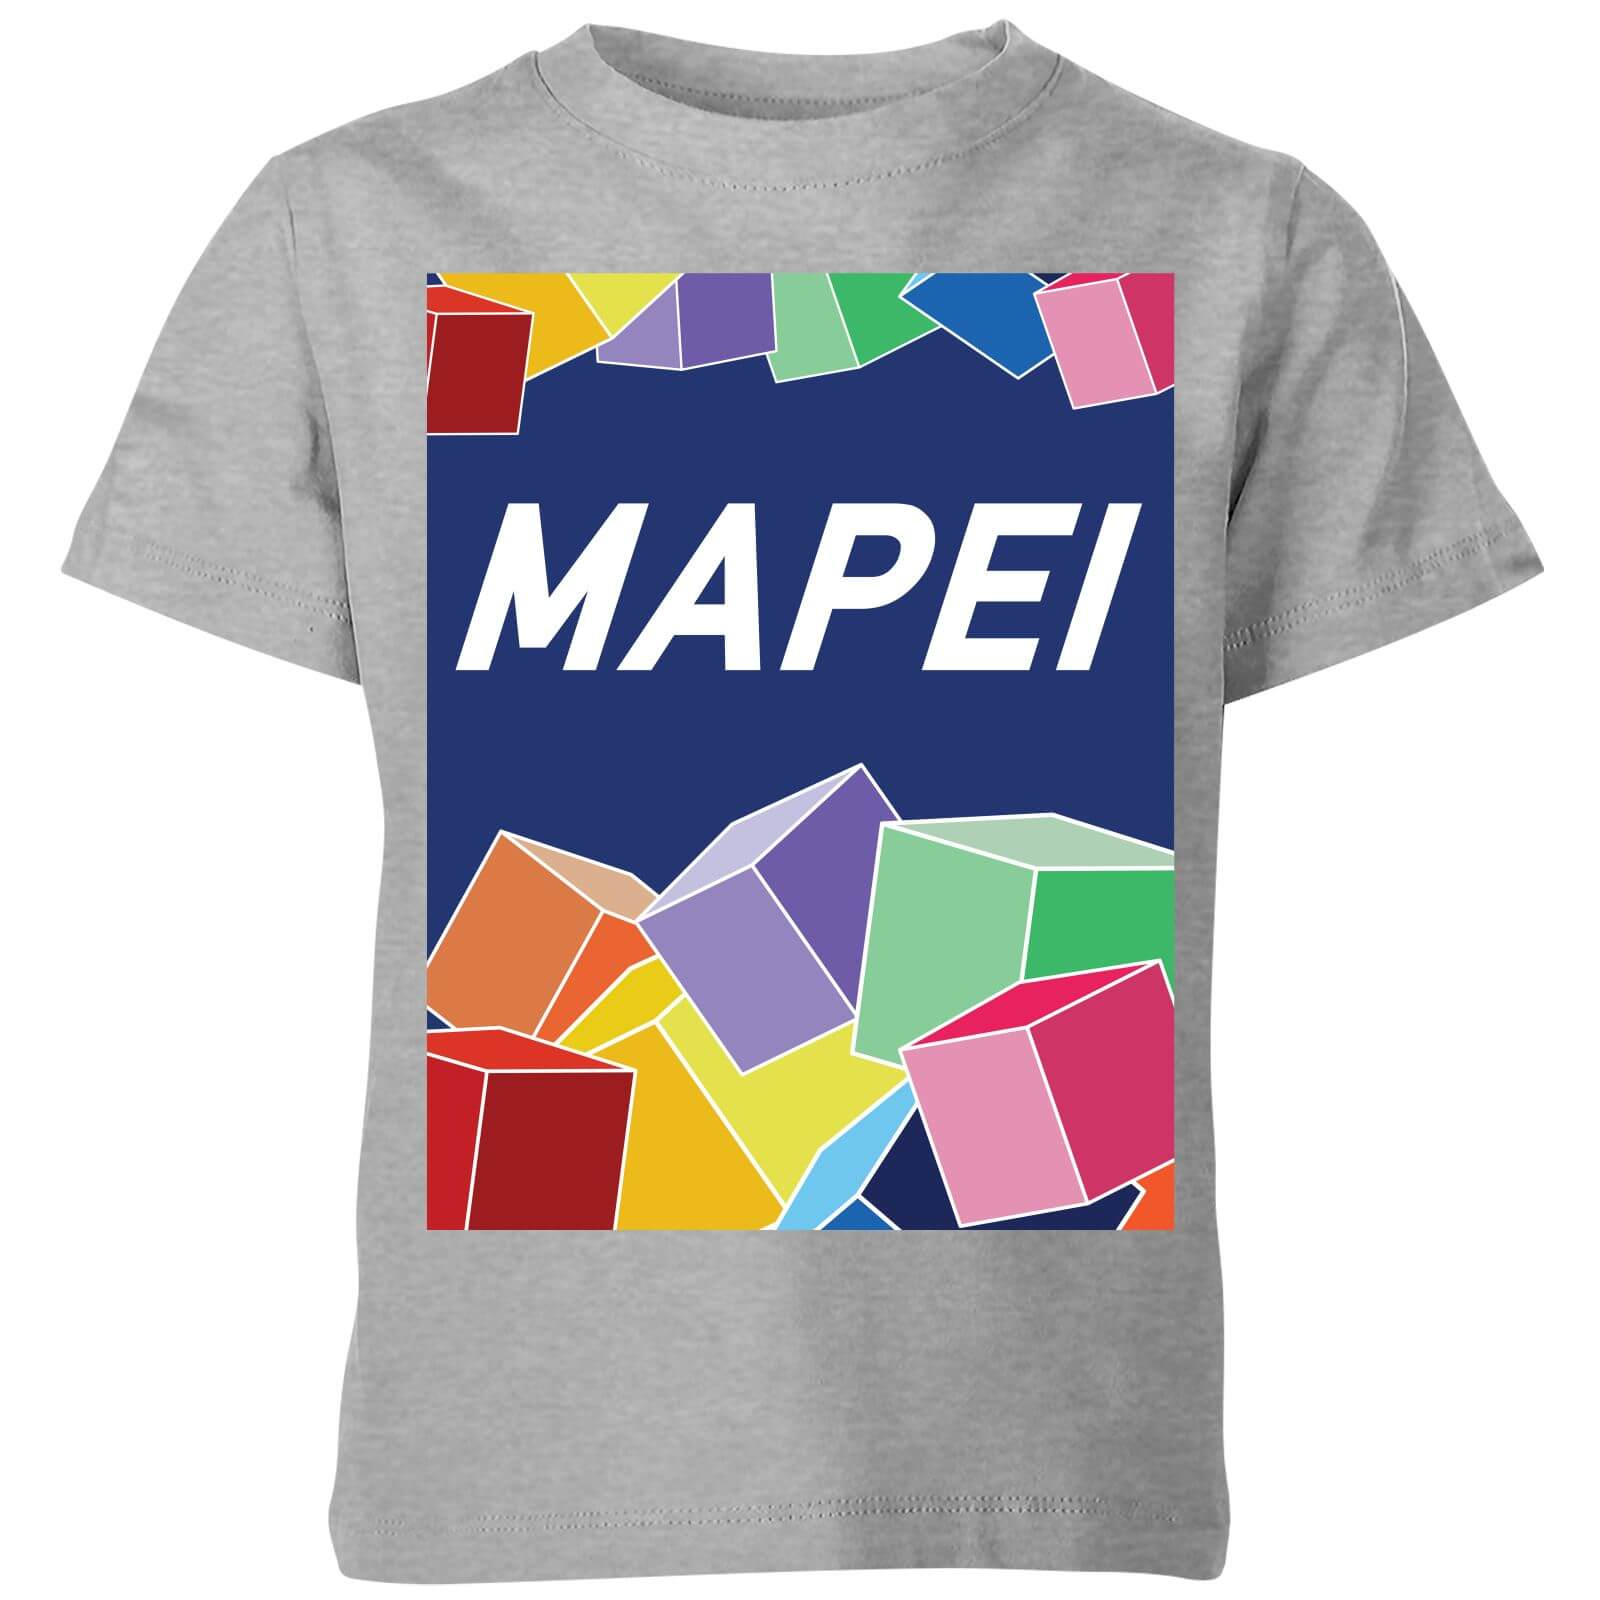 Summit Finish Mapei Kids' T-Shirt - Grey - 11-12 Jahre - Grau